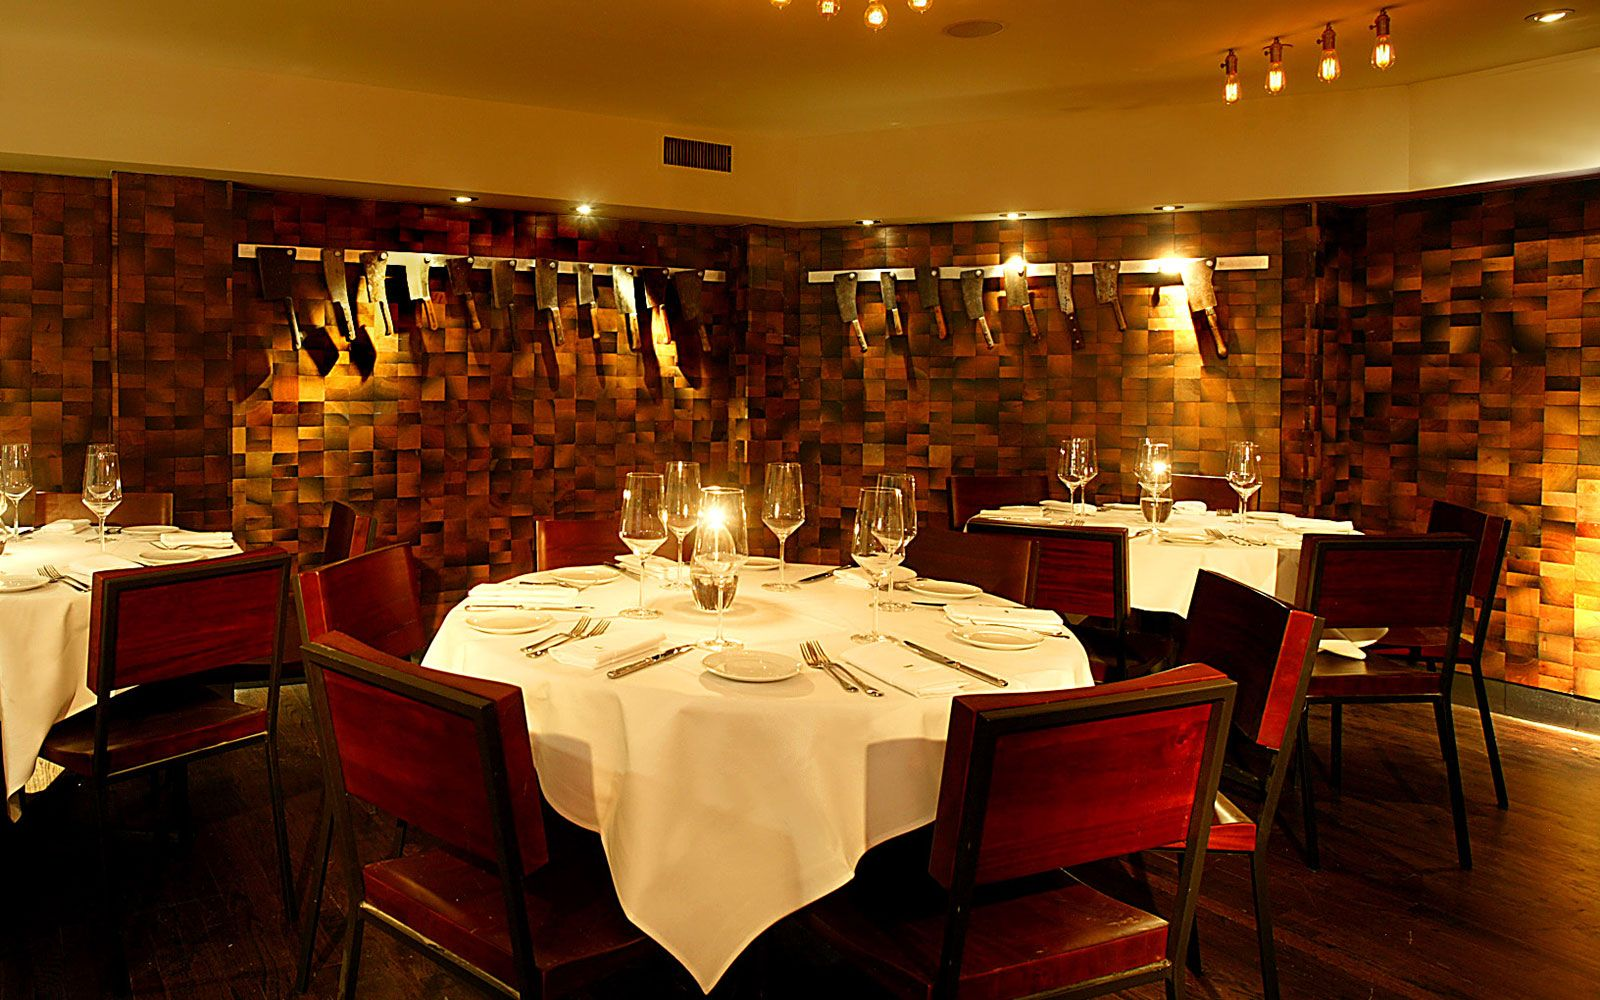 Quality Meats Steakhouse Best Steakhouse 57 West 58th St New York New York 10019 Private Event Space Space Restaurants Private Dining Room